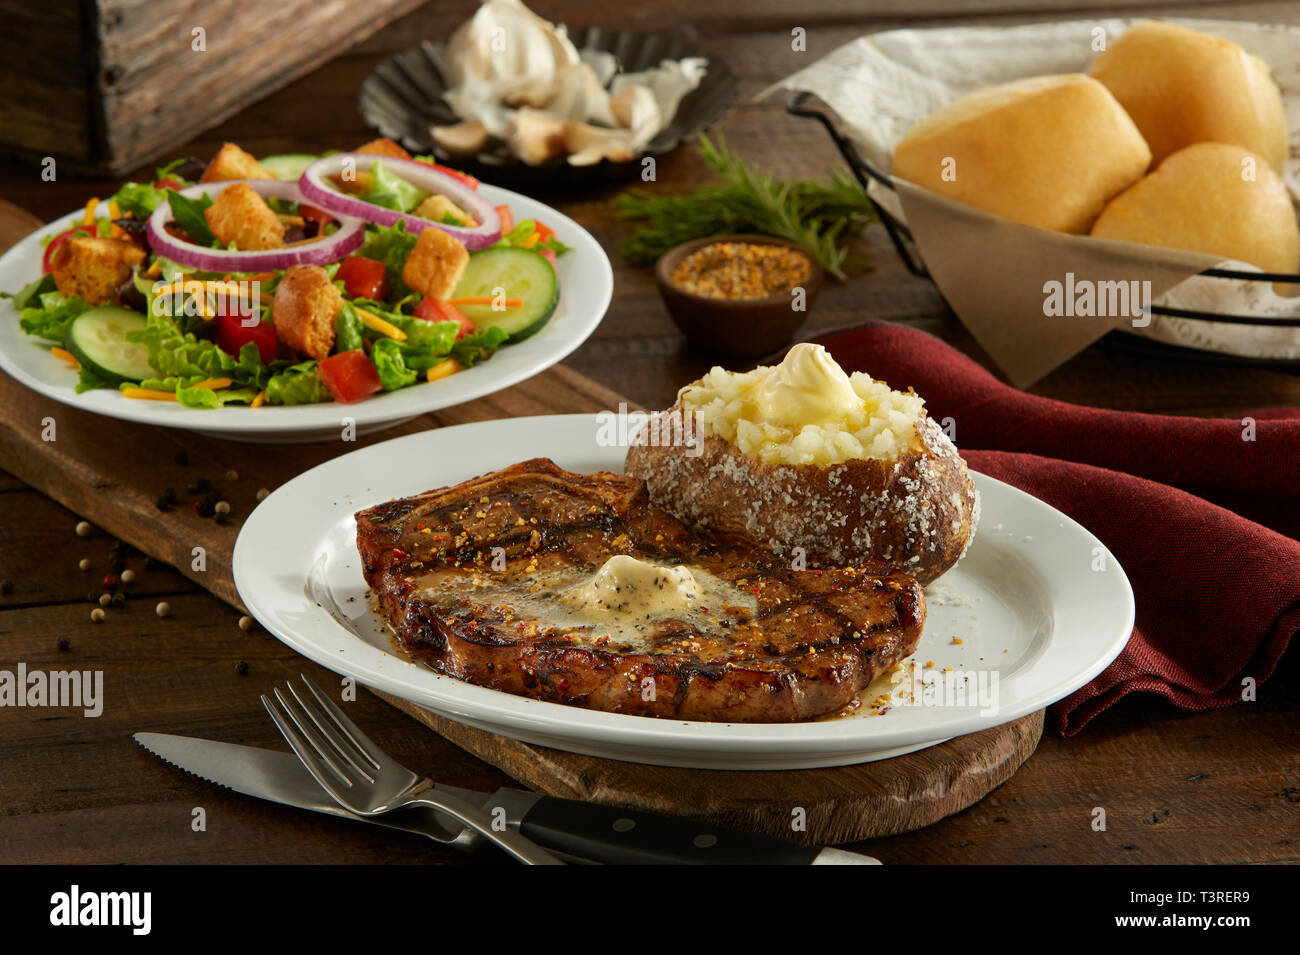 Kanas City Bone in Strip Steak with baked potato, salad, and dinner rolls - Stock Image